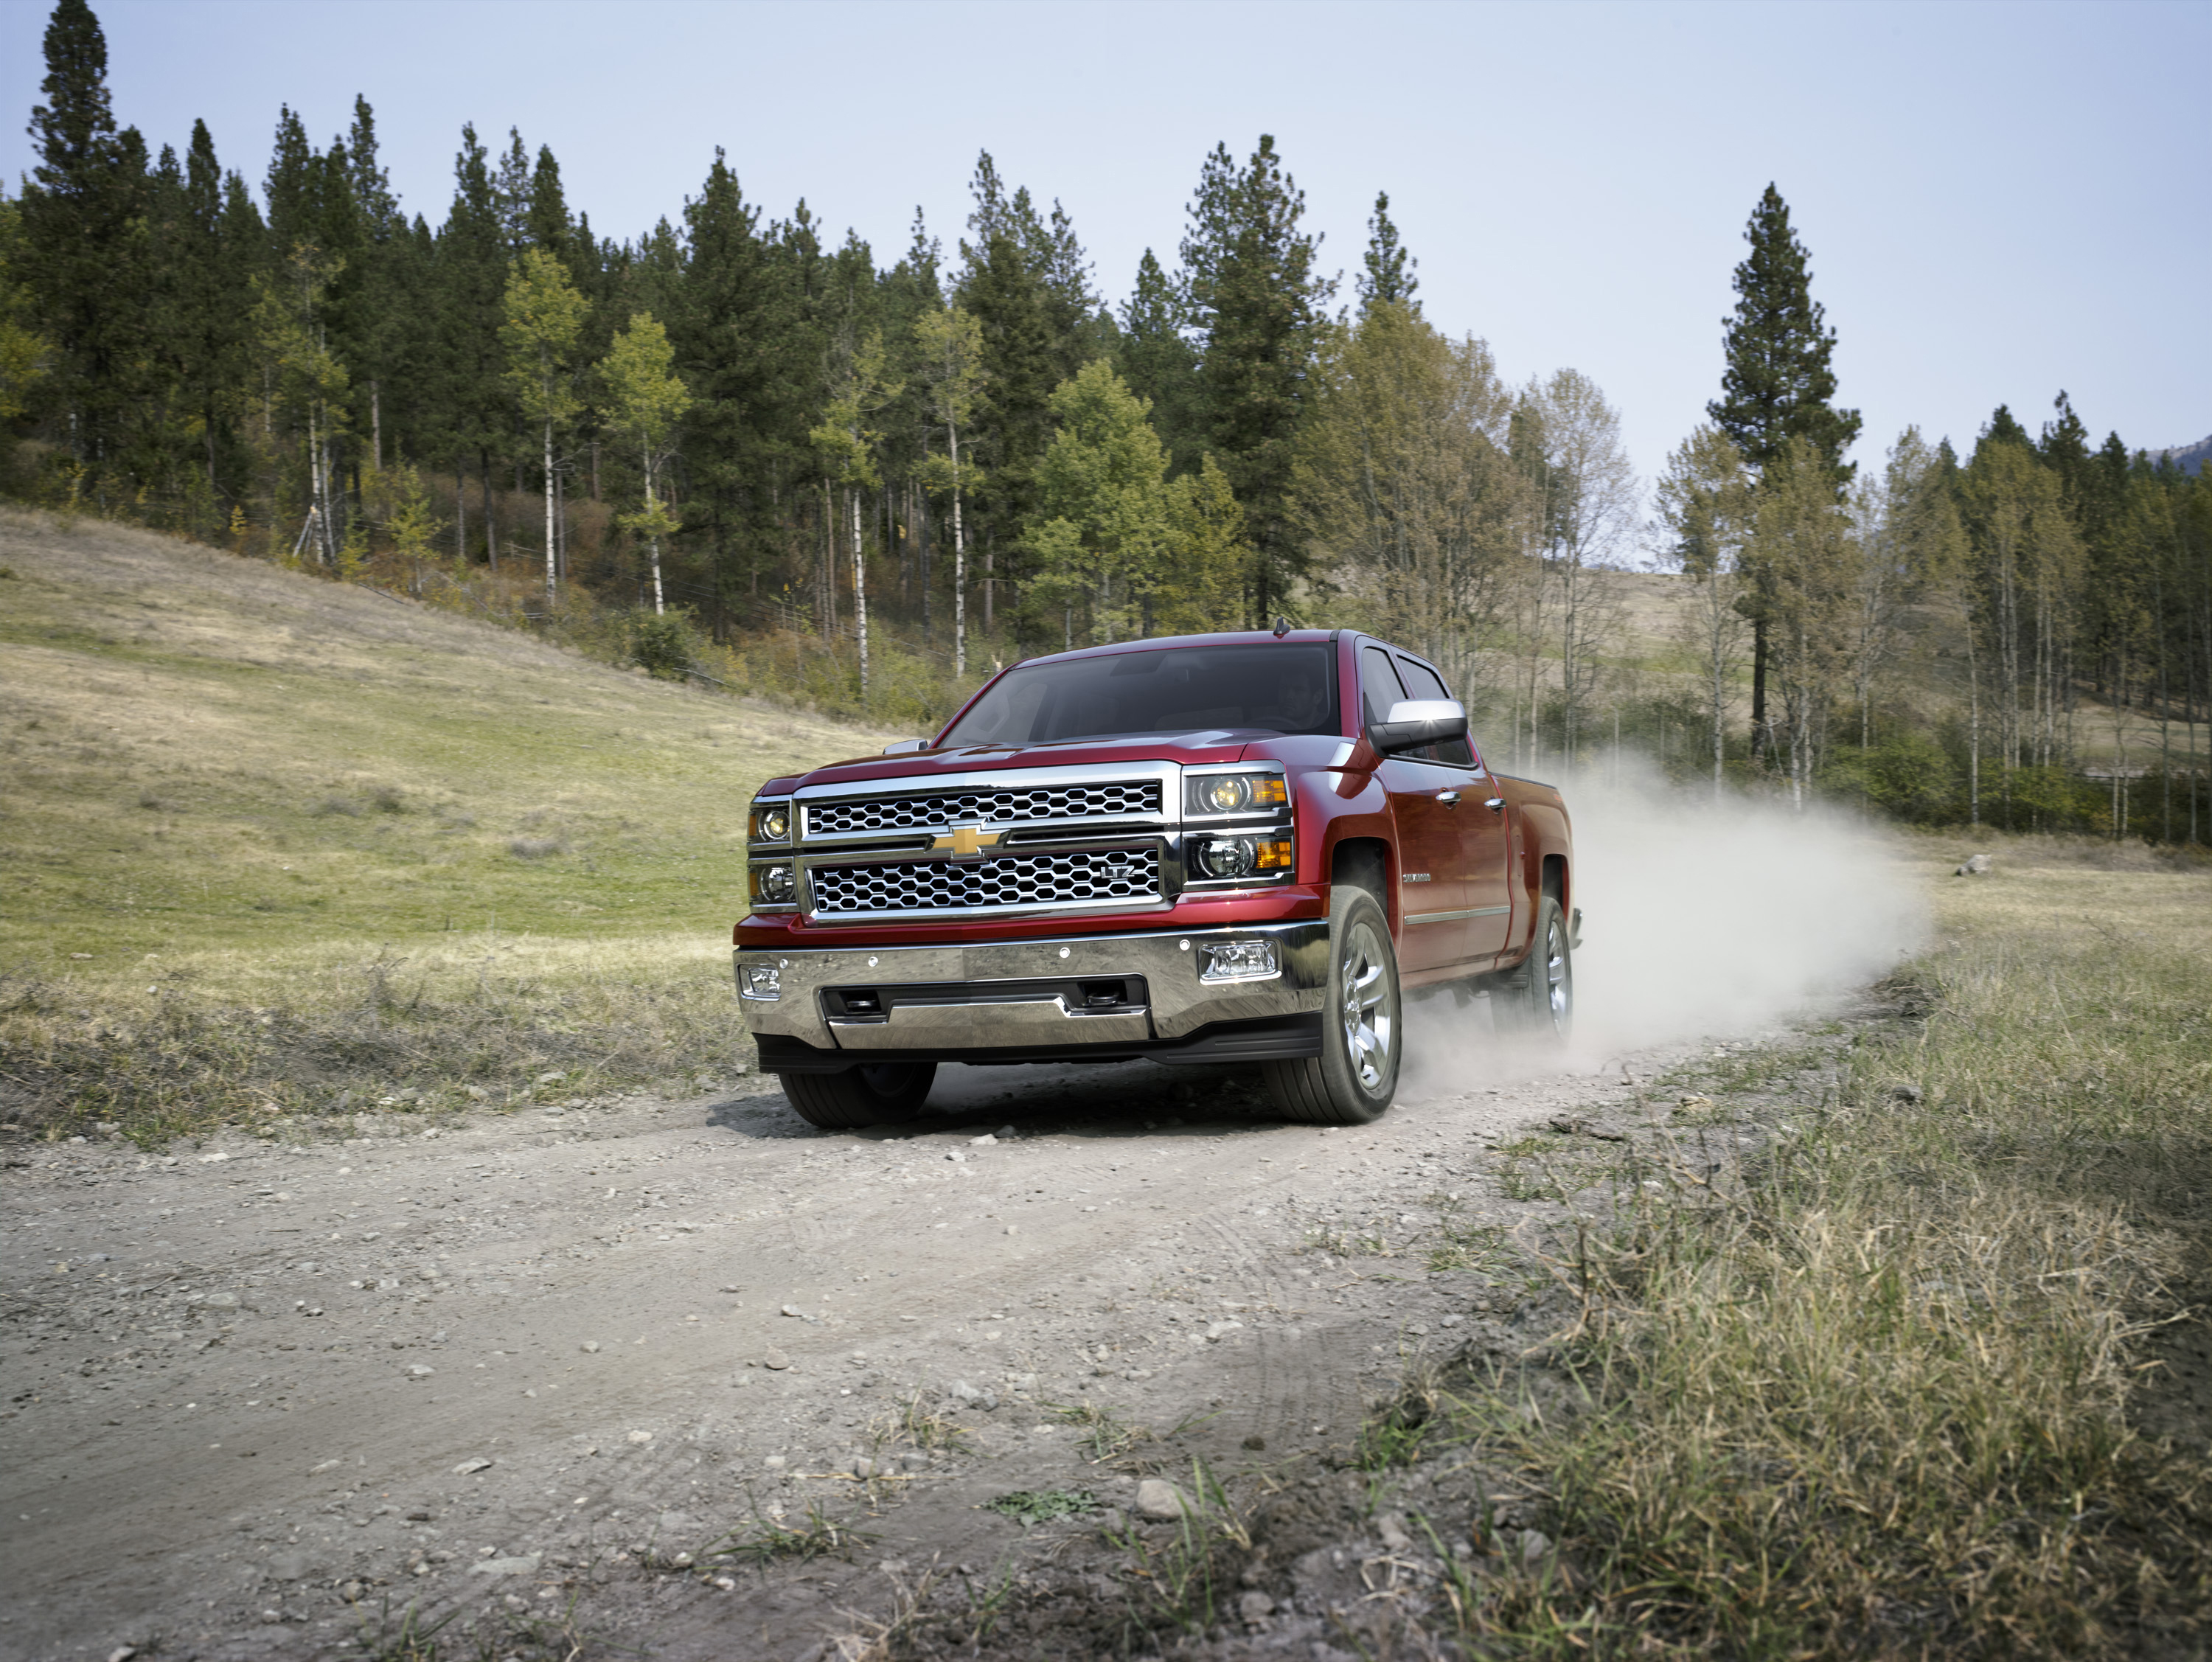 2014 Silverado Design Builds On The Strength Of Experience